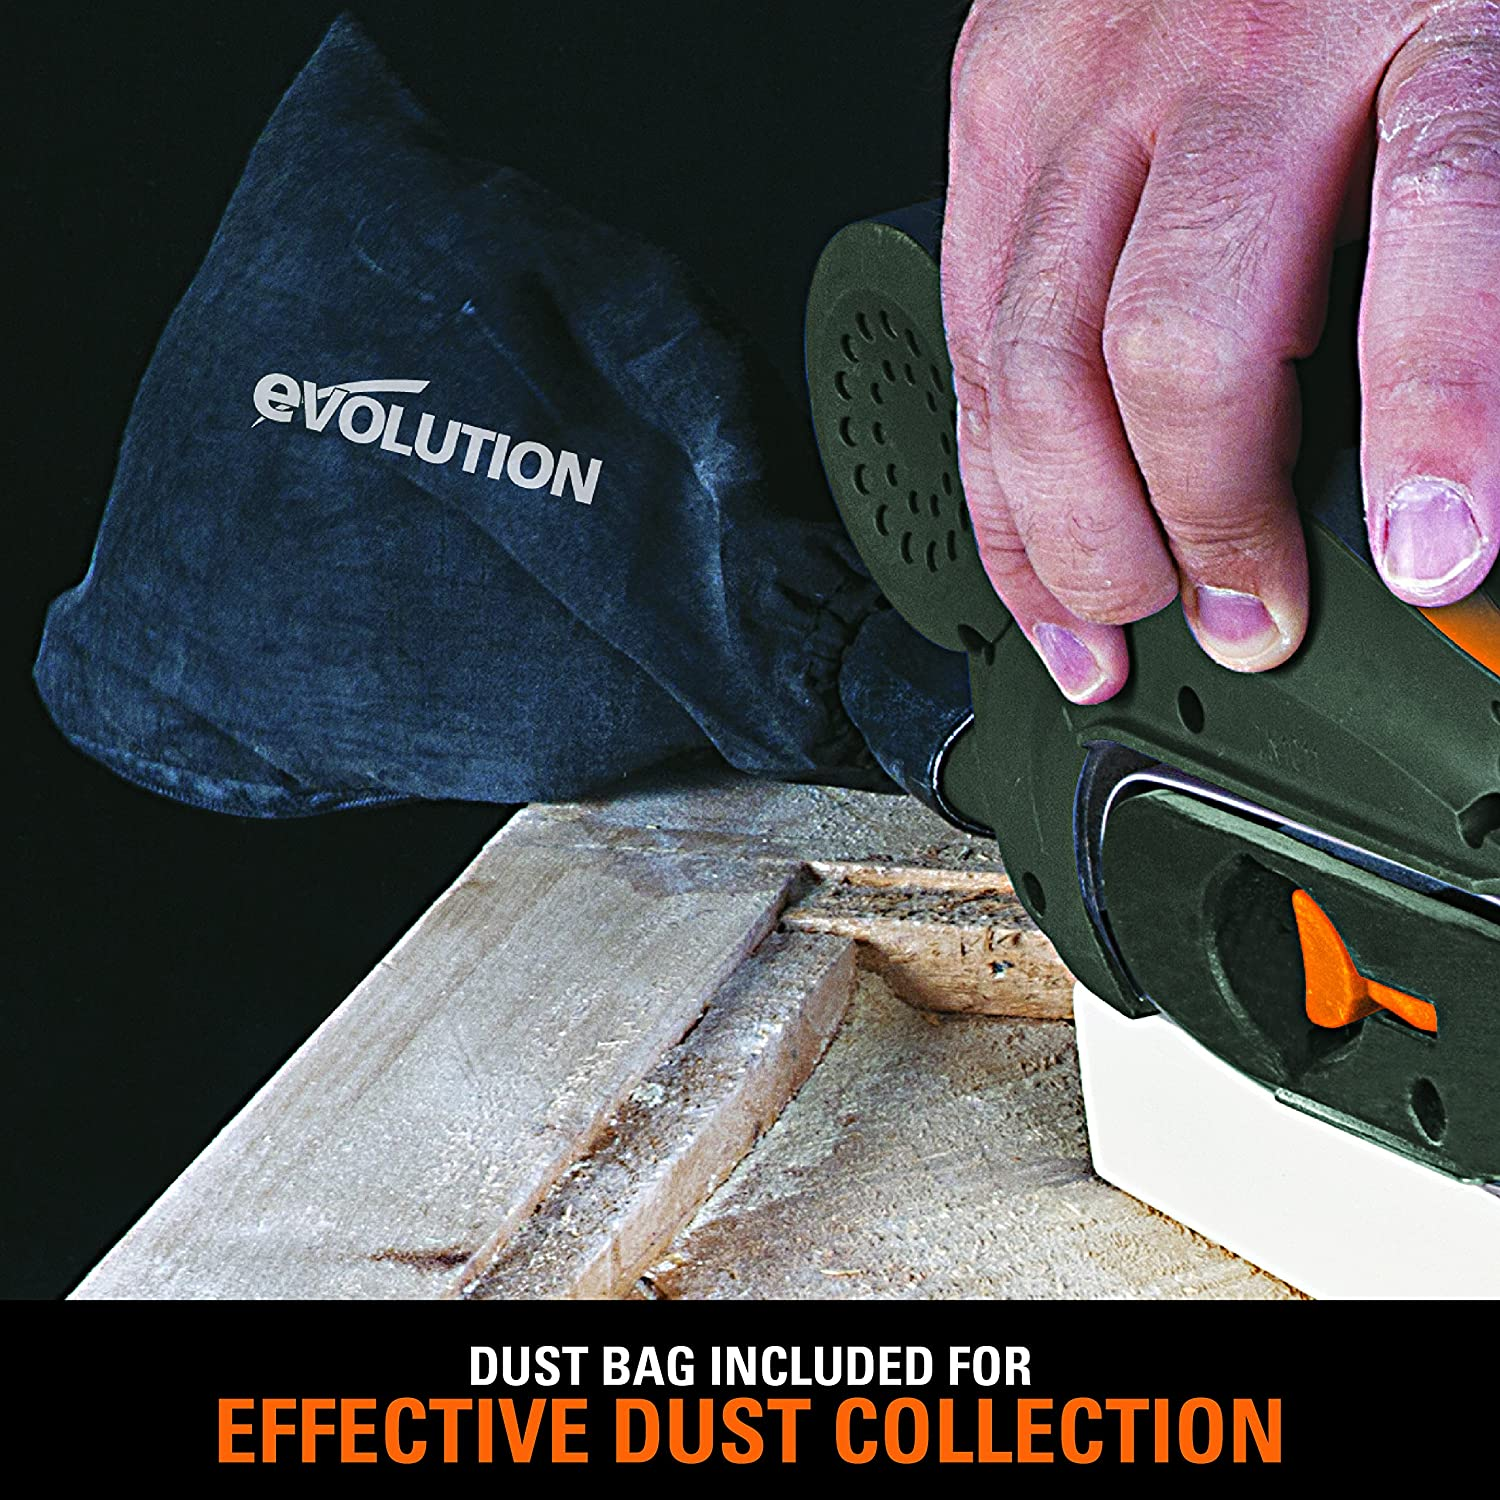 Evolution Power Tools with Pack of 3 Sanding Belts 120 Grit